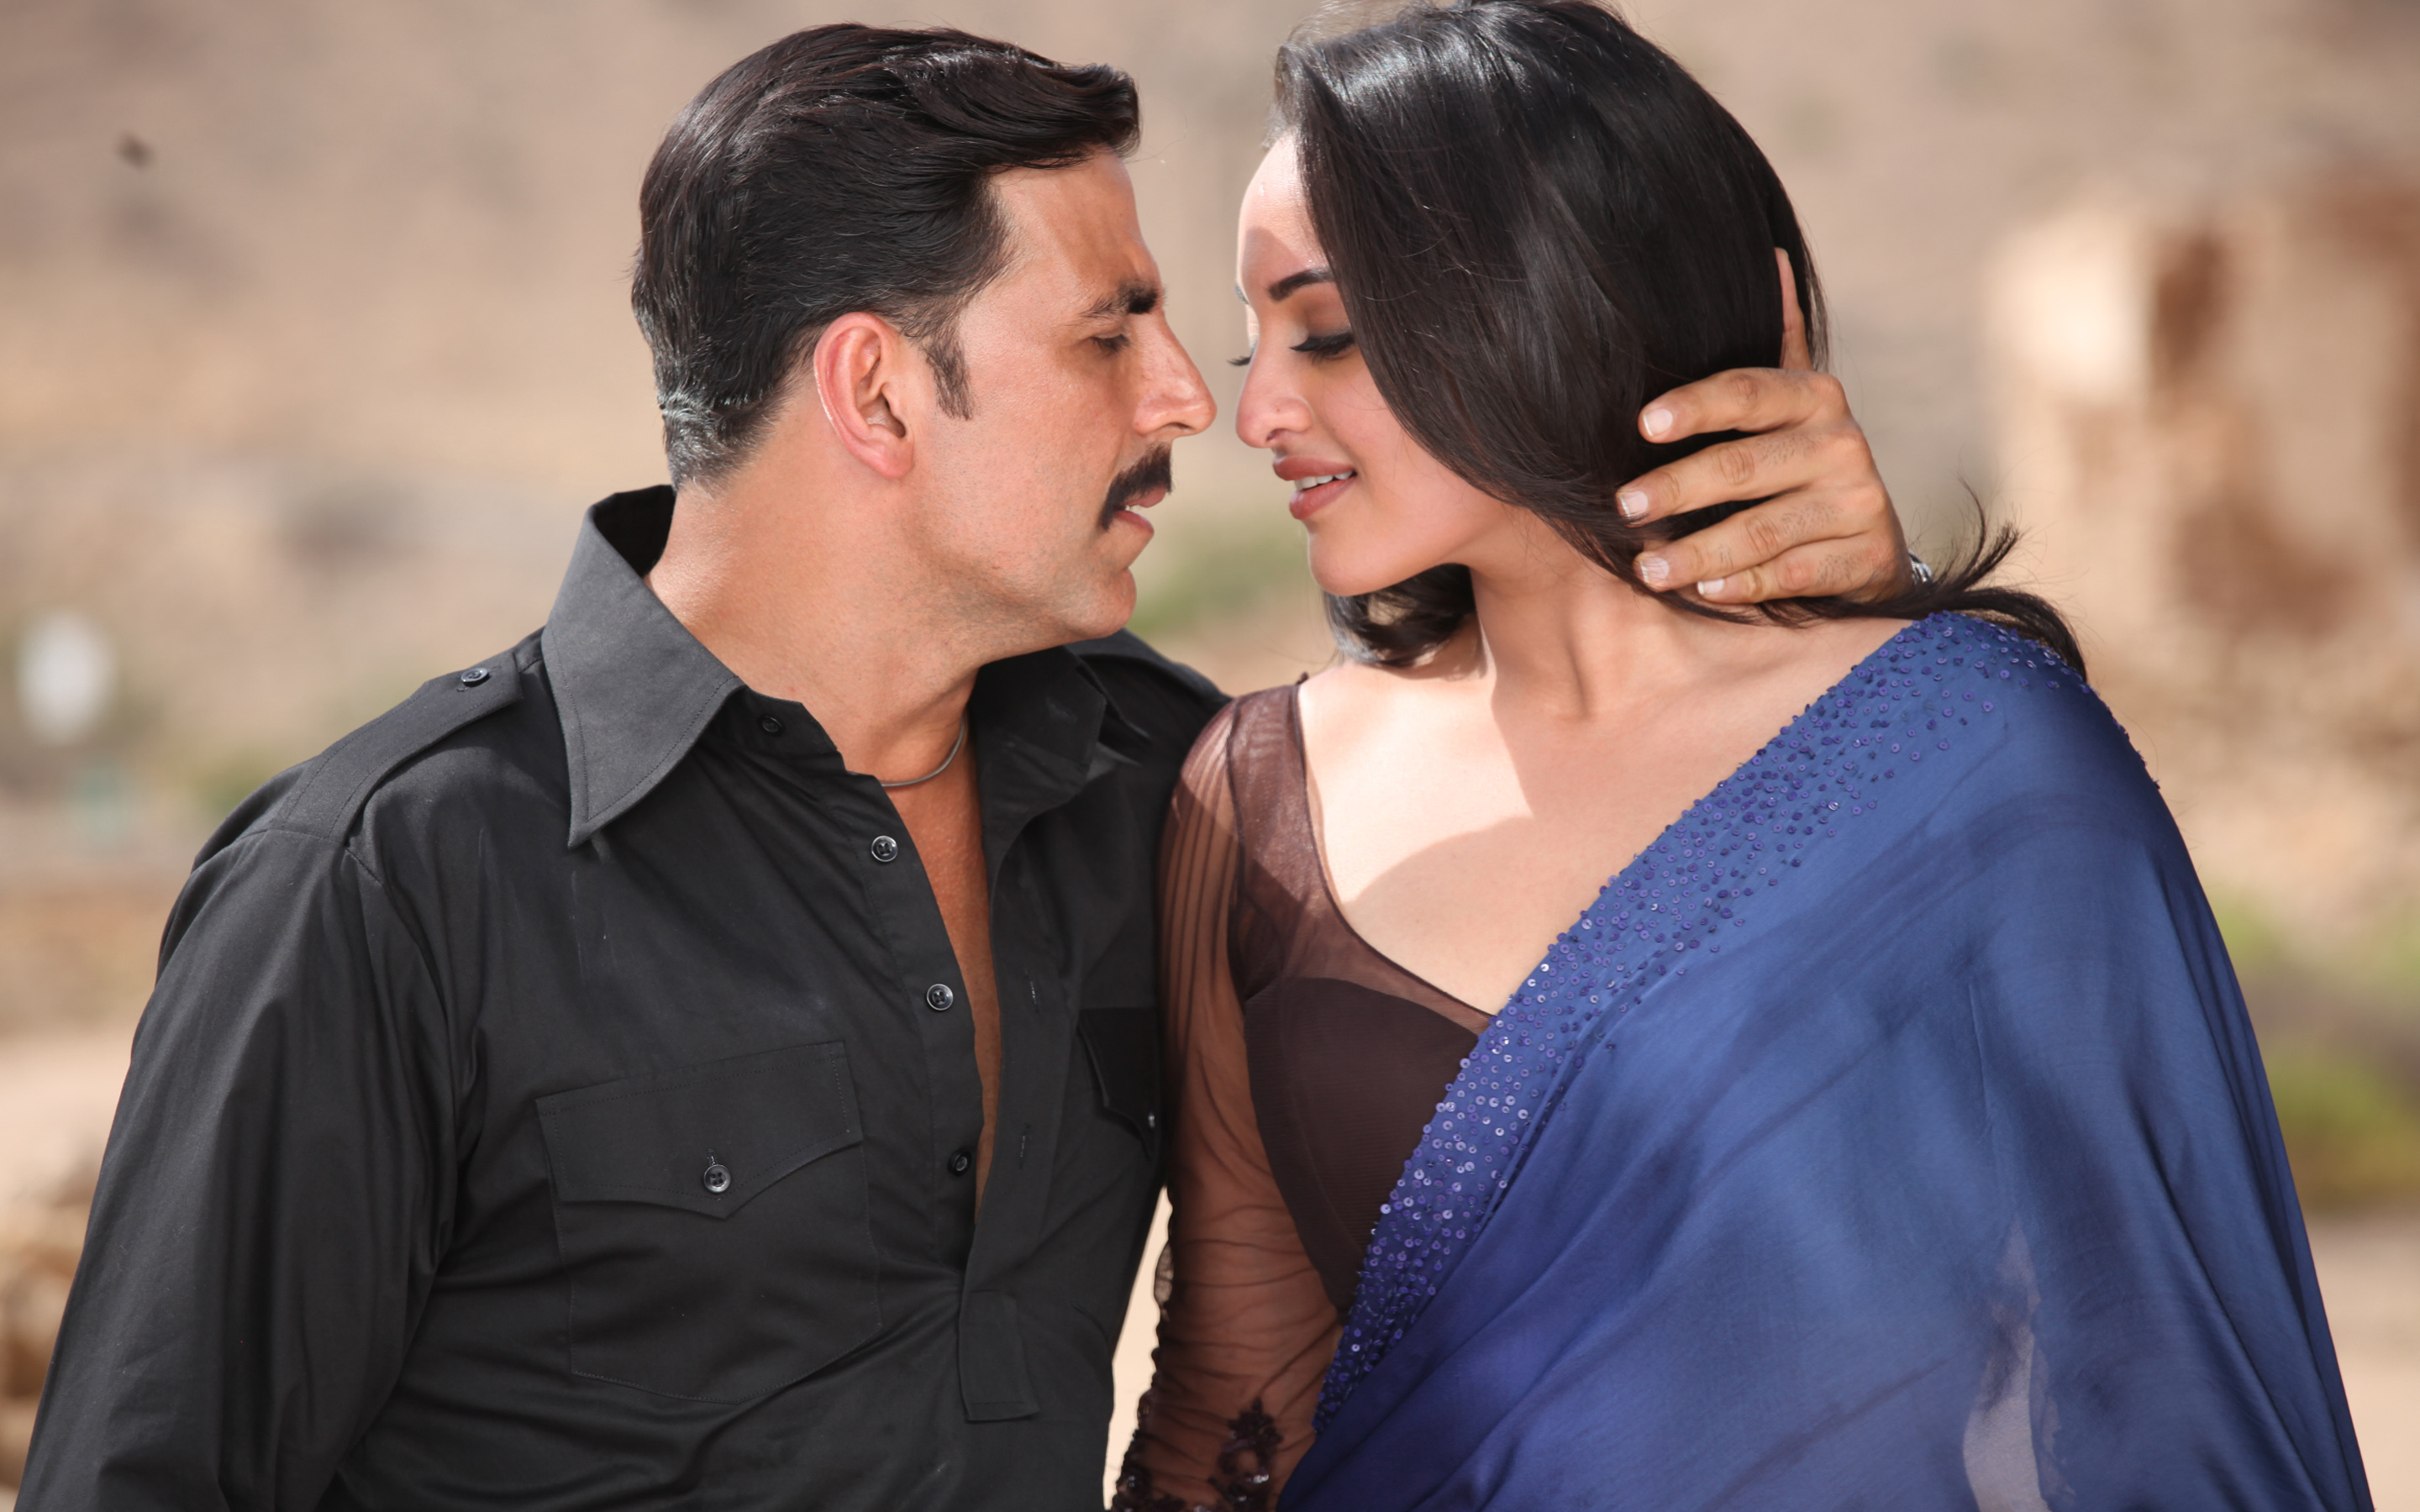 akshay kumar and sonakshi hd wallpaper | hd latest wallpapers